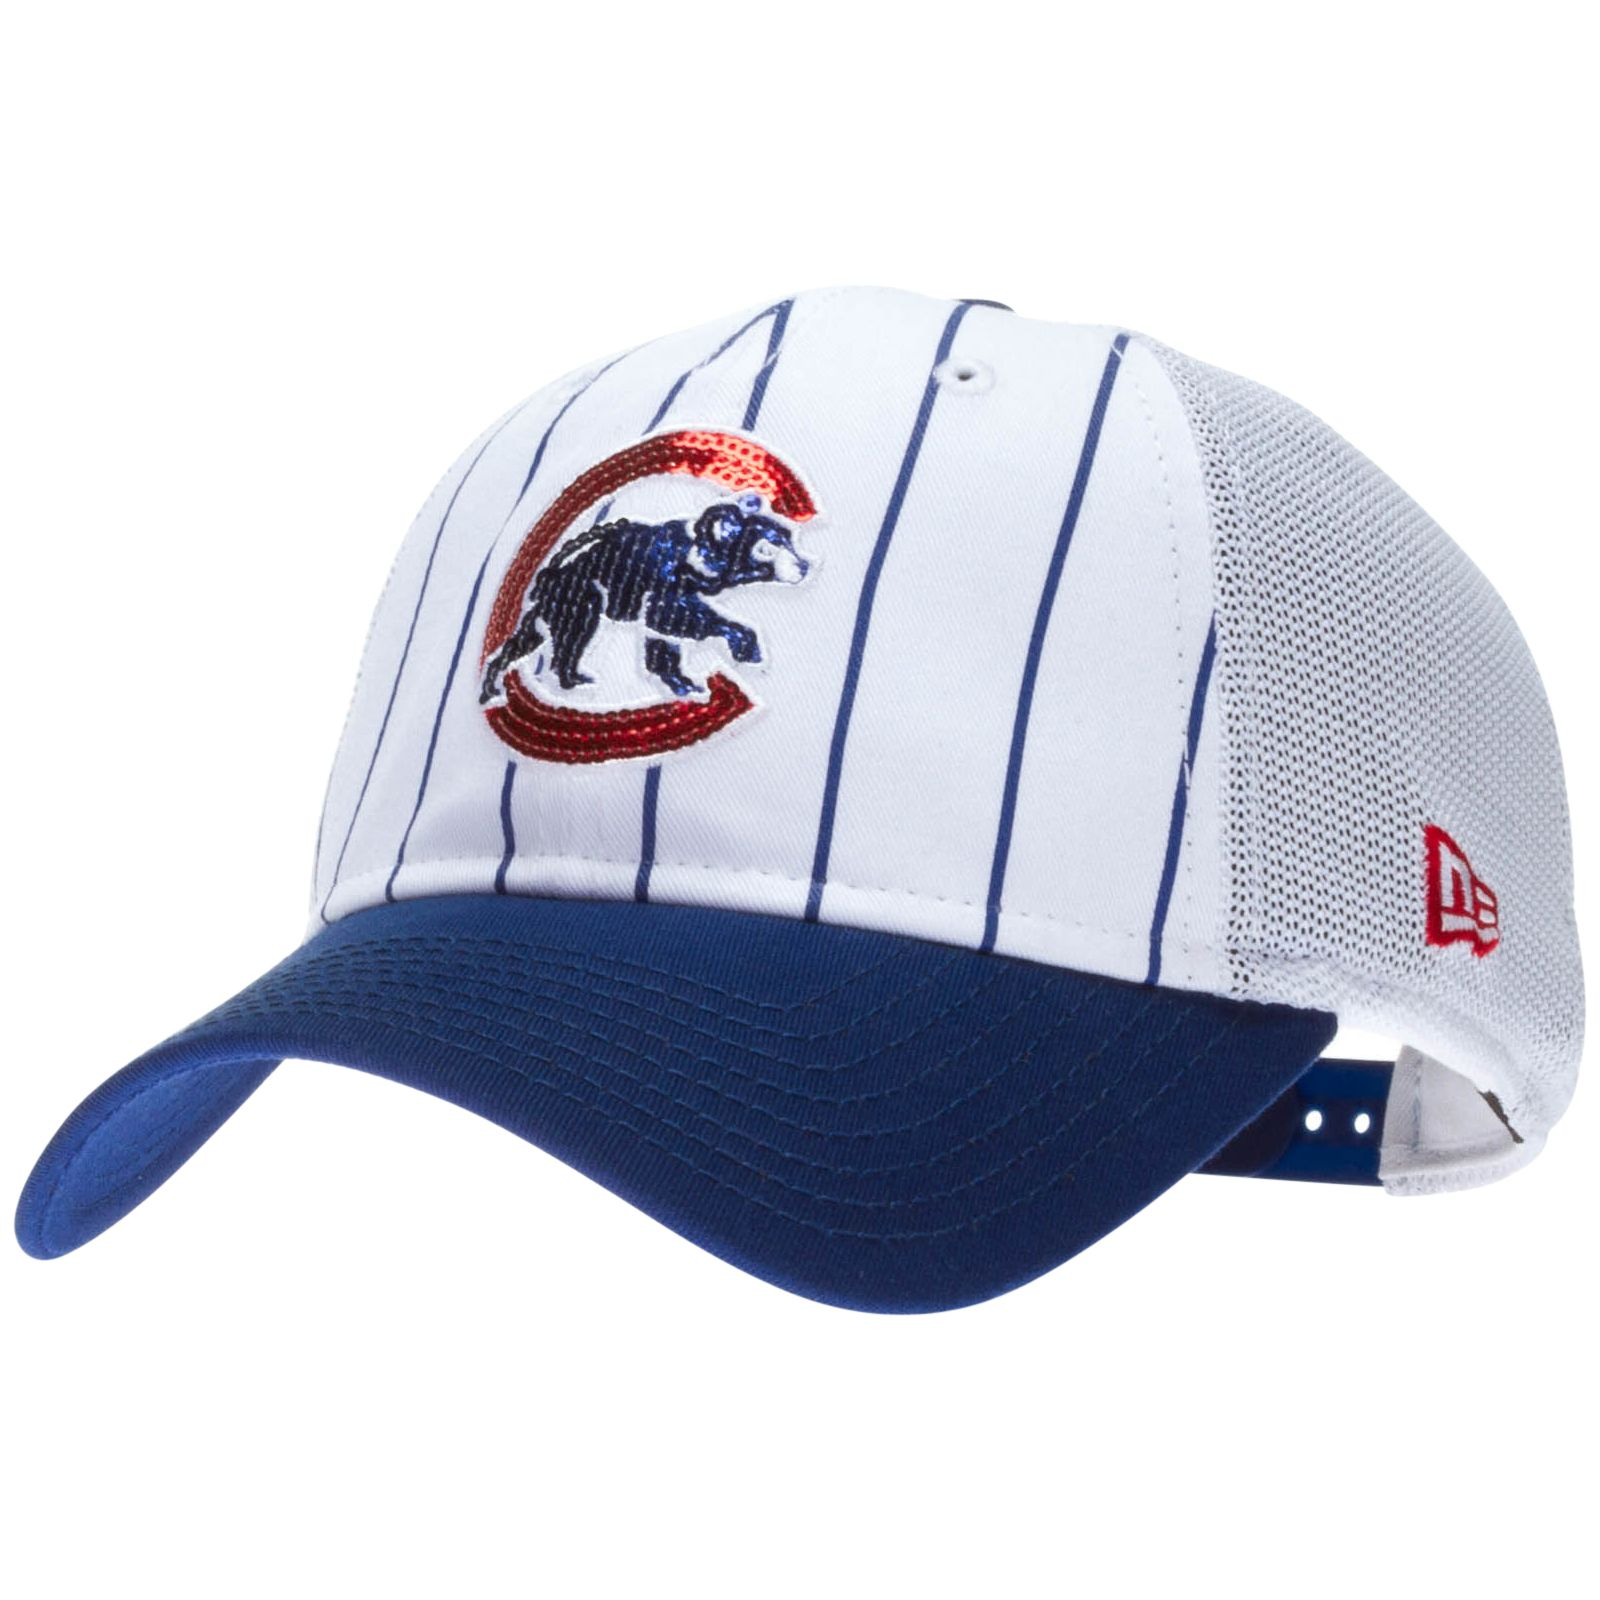 3a523486fa6 Chicago Cubs Women s White Sequin Crawl Bear Pinstripe Adjustable Hat by  New Era  chicago  cubs  ChicagoCubs